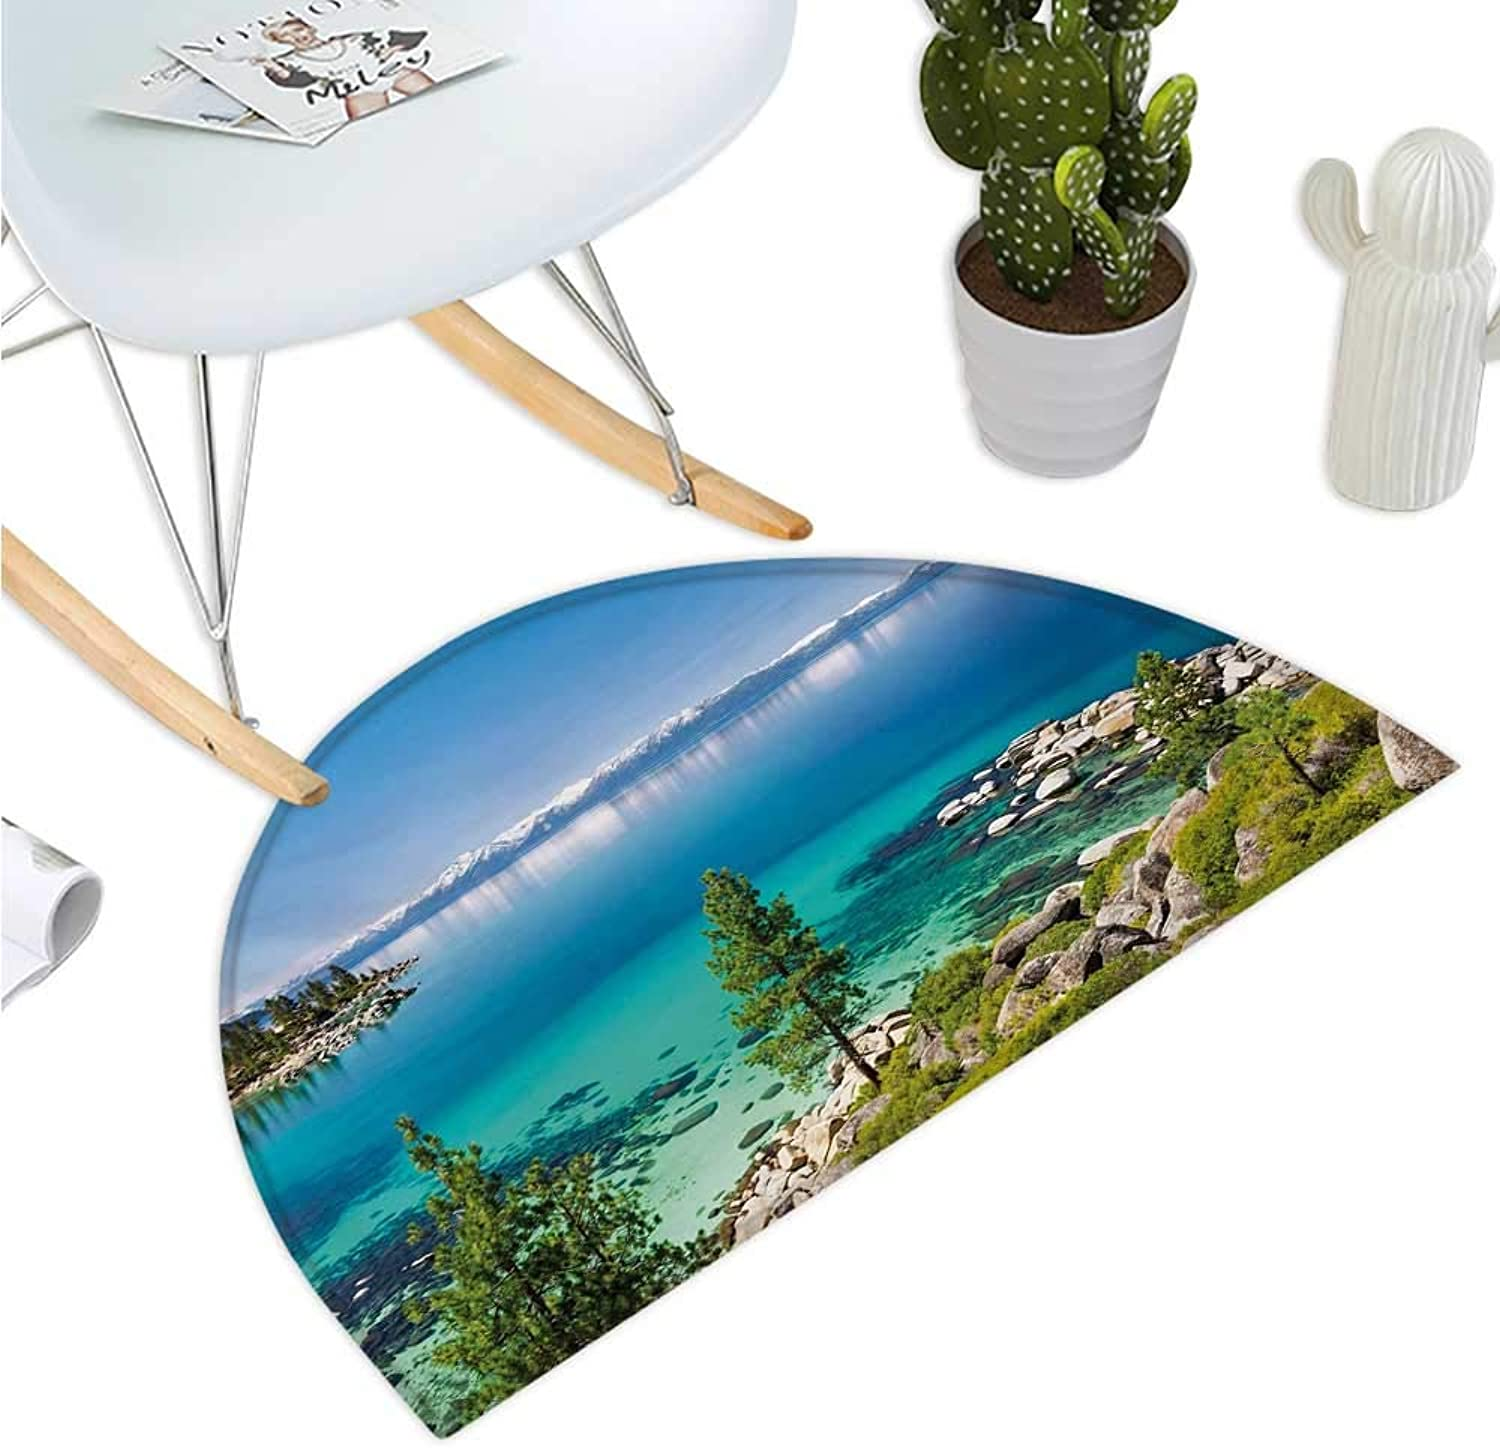 bluee Semicircular Cushion Tranquil View of Lake Tahoe Sierra Pines on Rocks with Turquoise Waters Shoreline Halfmoon doormats H 39.3  xD 59  bluee Grey Green